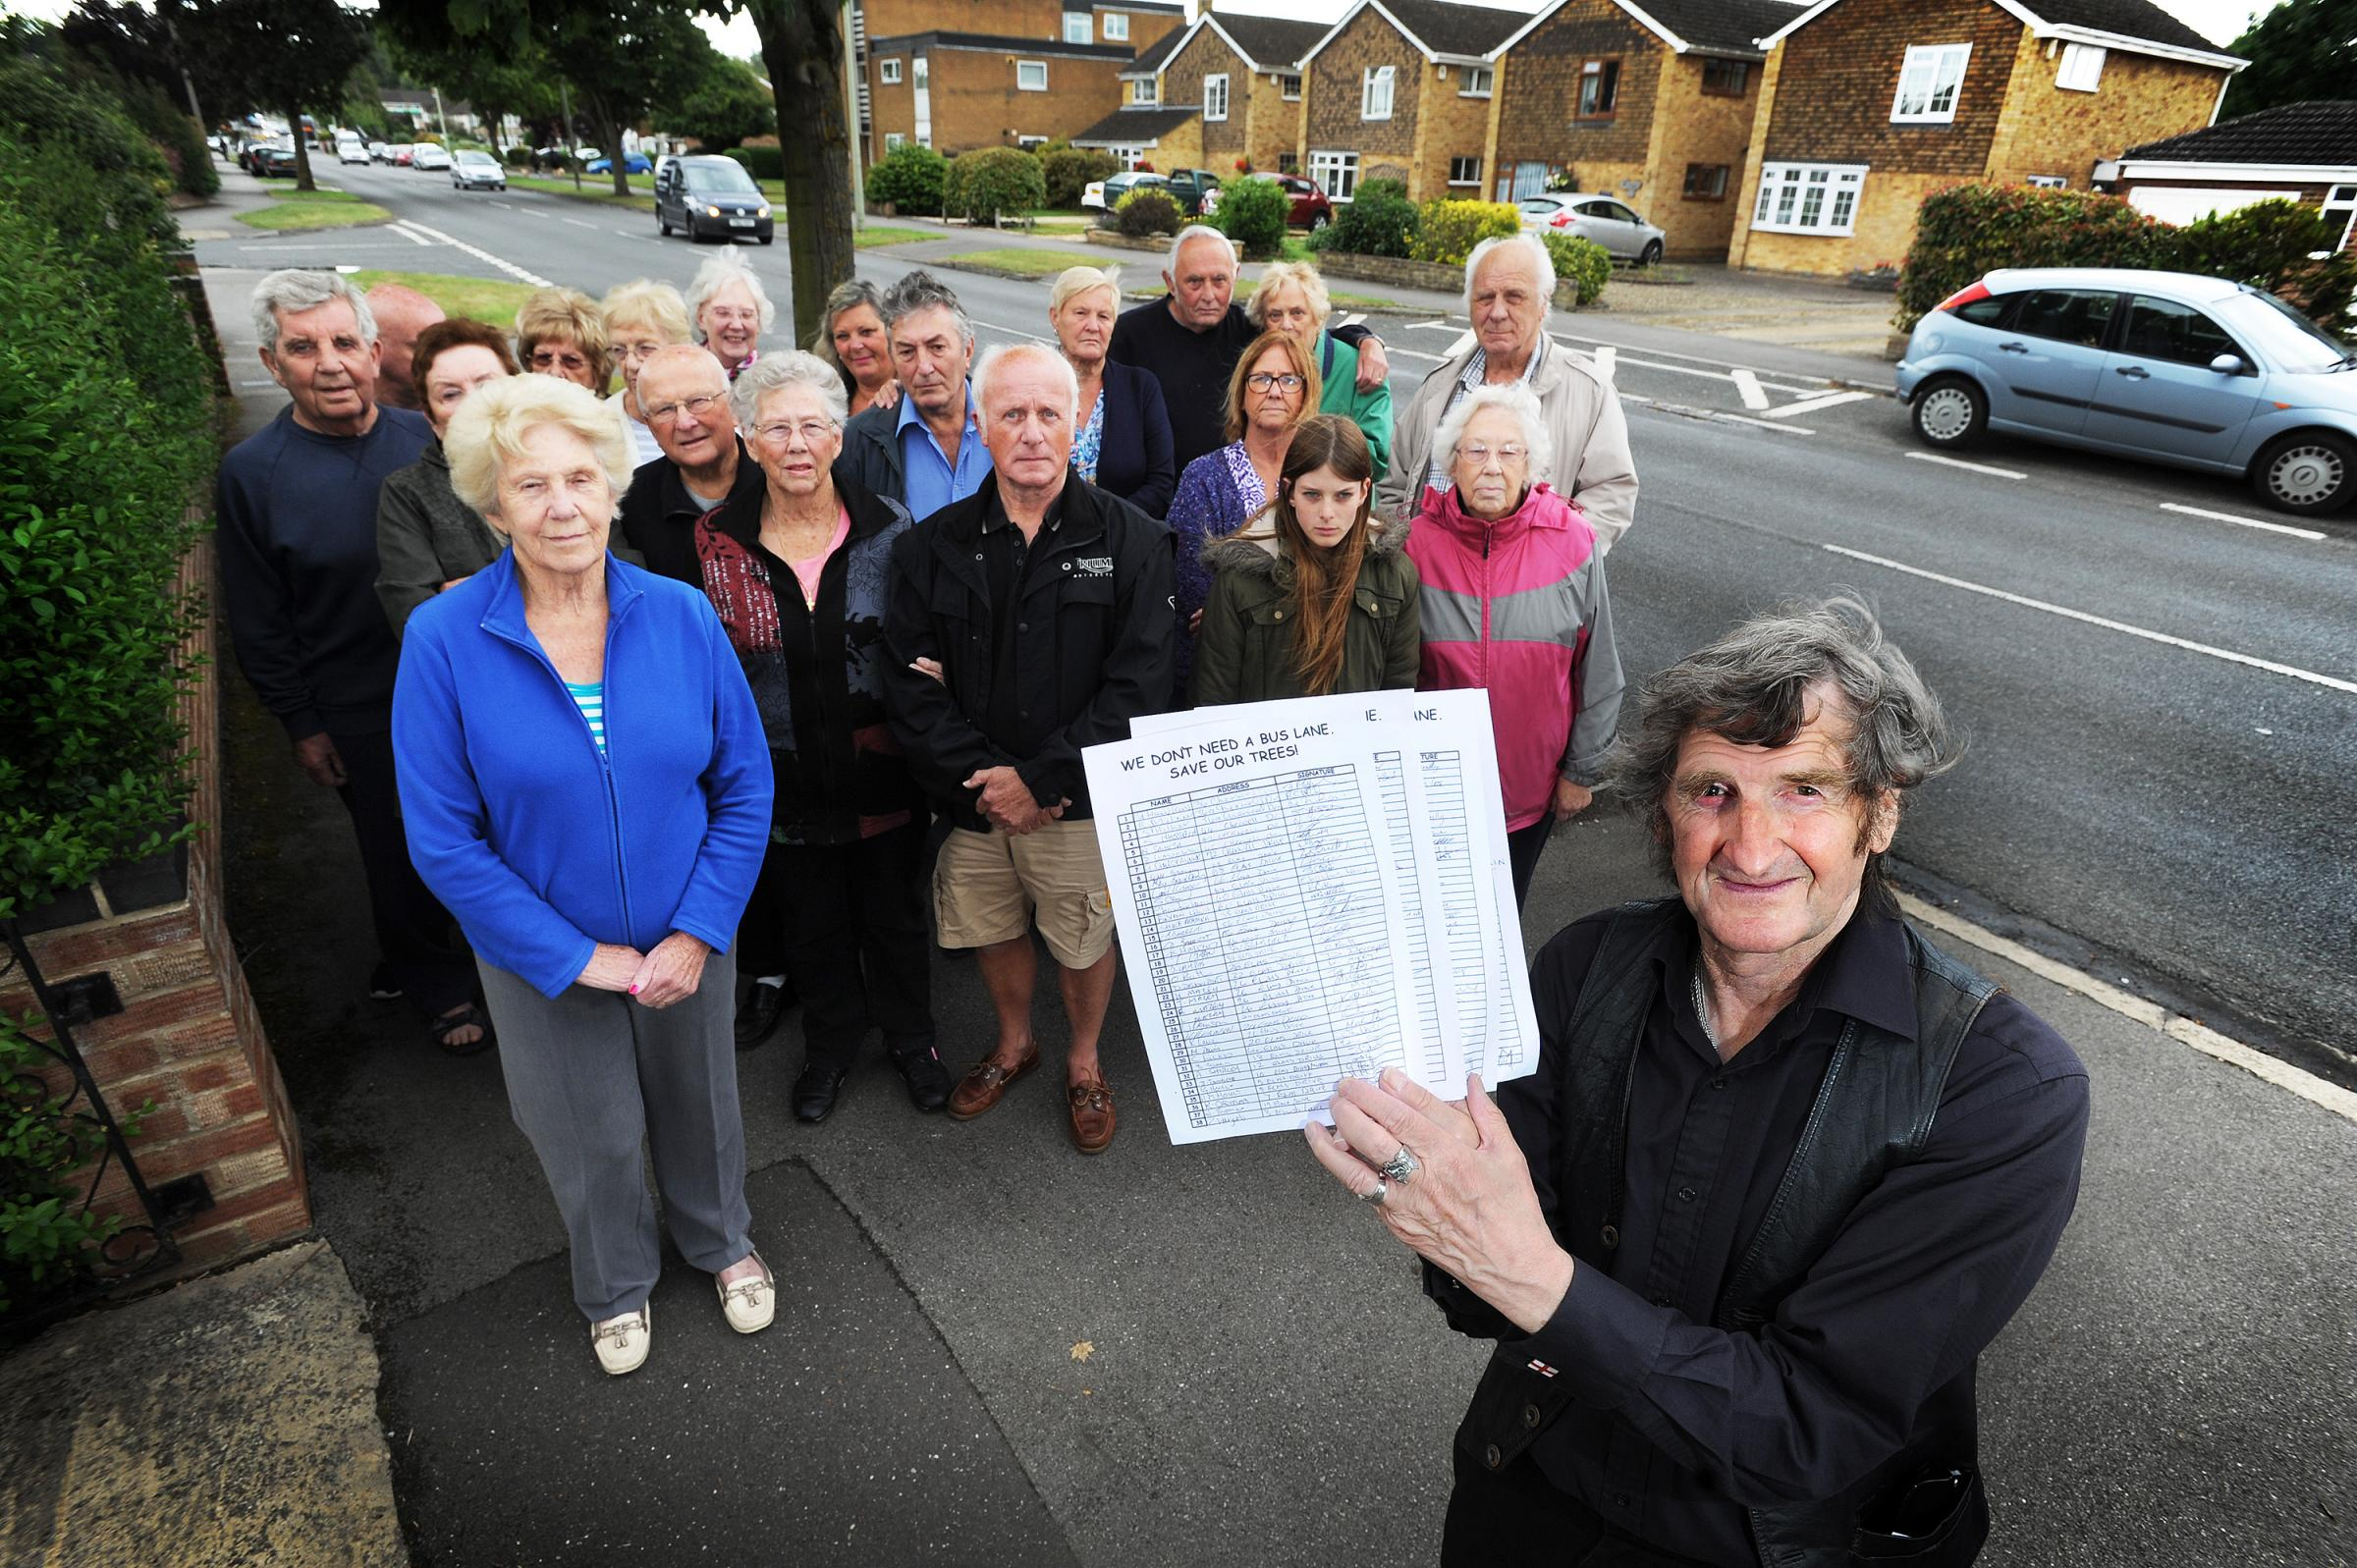 Opposition: Mick Haines, front, with a petition and residents against plans for a bus lane in Cherwell Drive